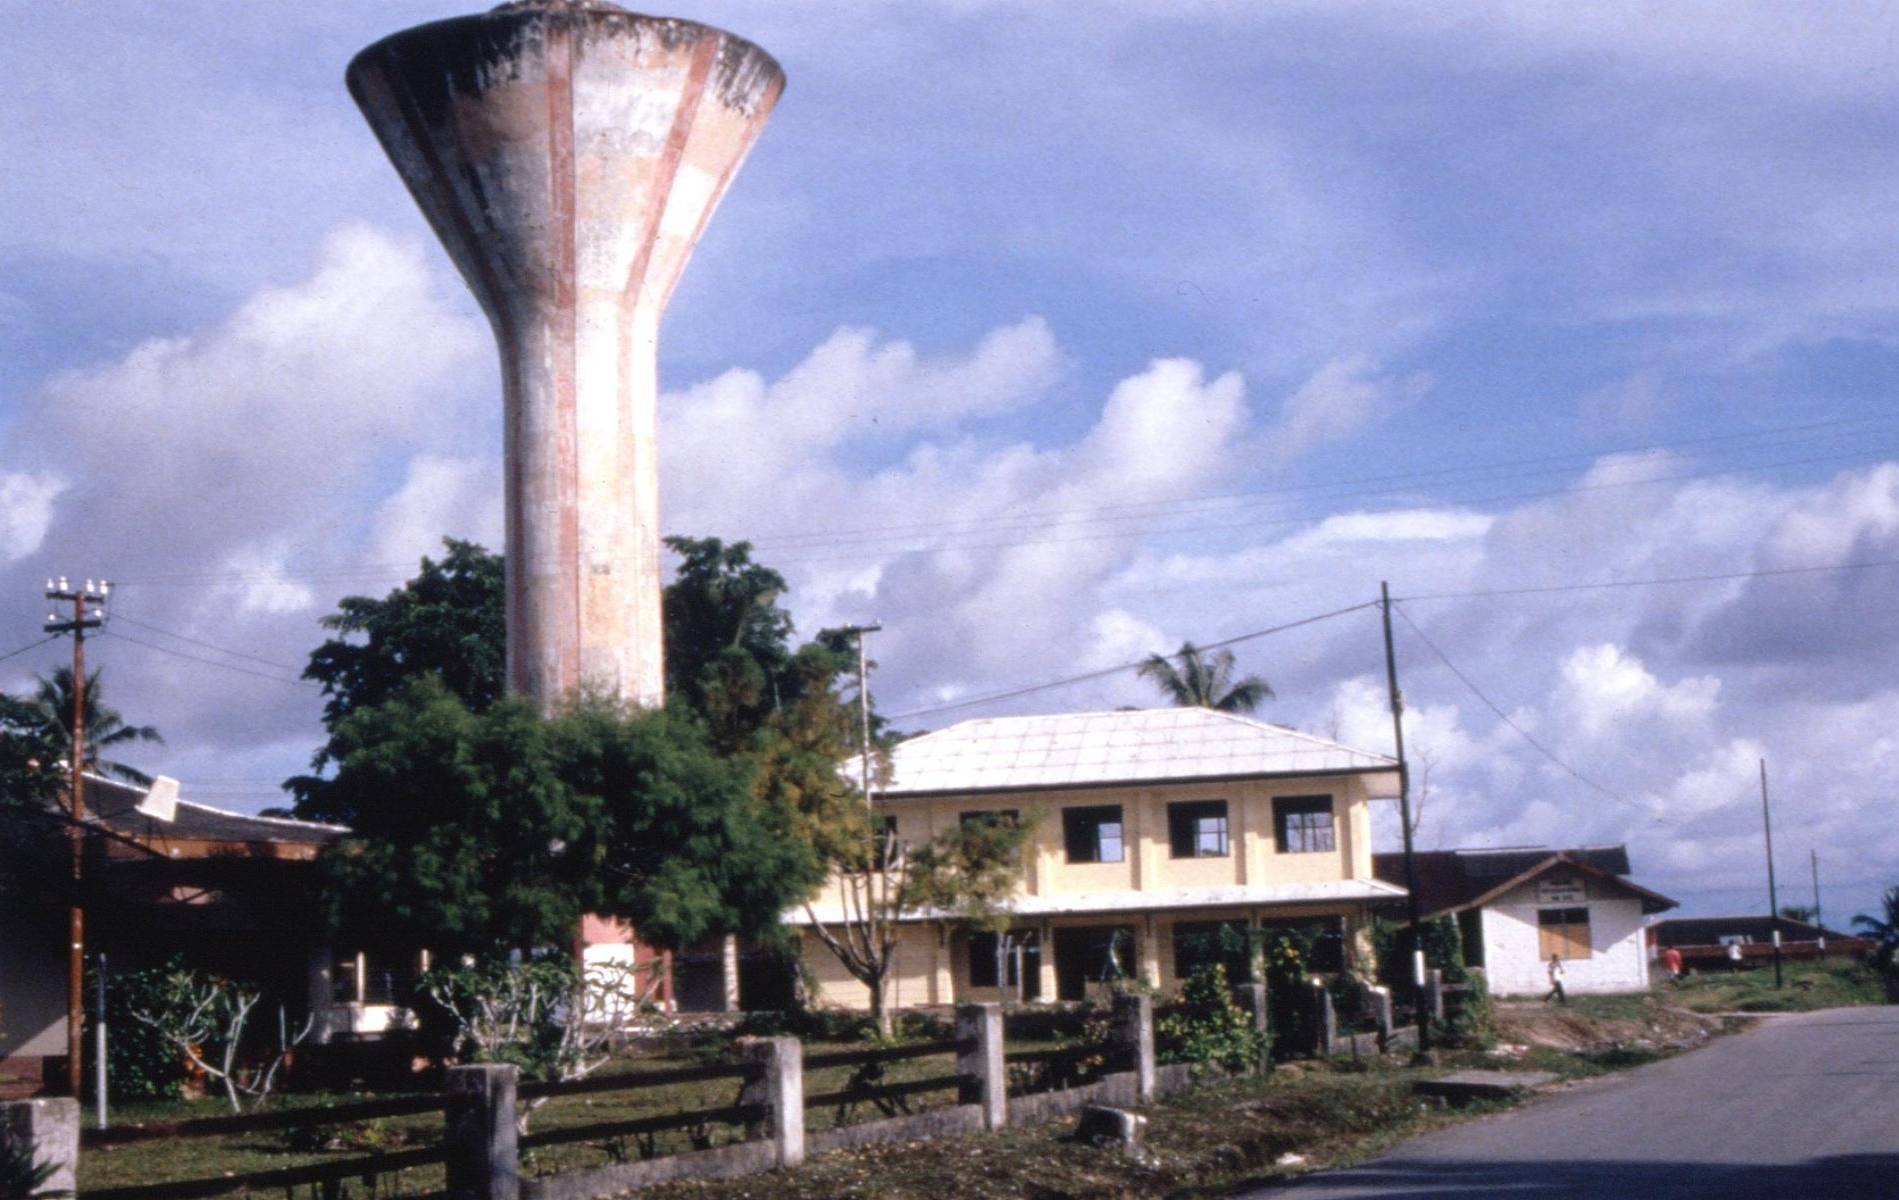 Water tower in Biak